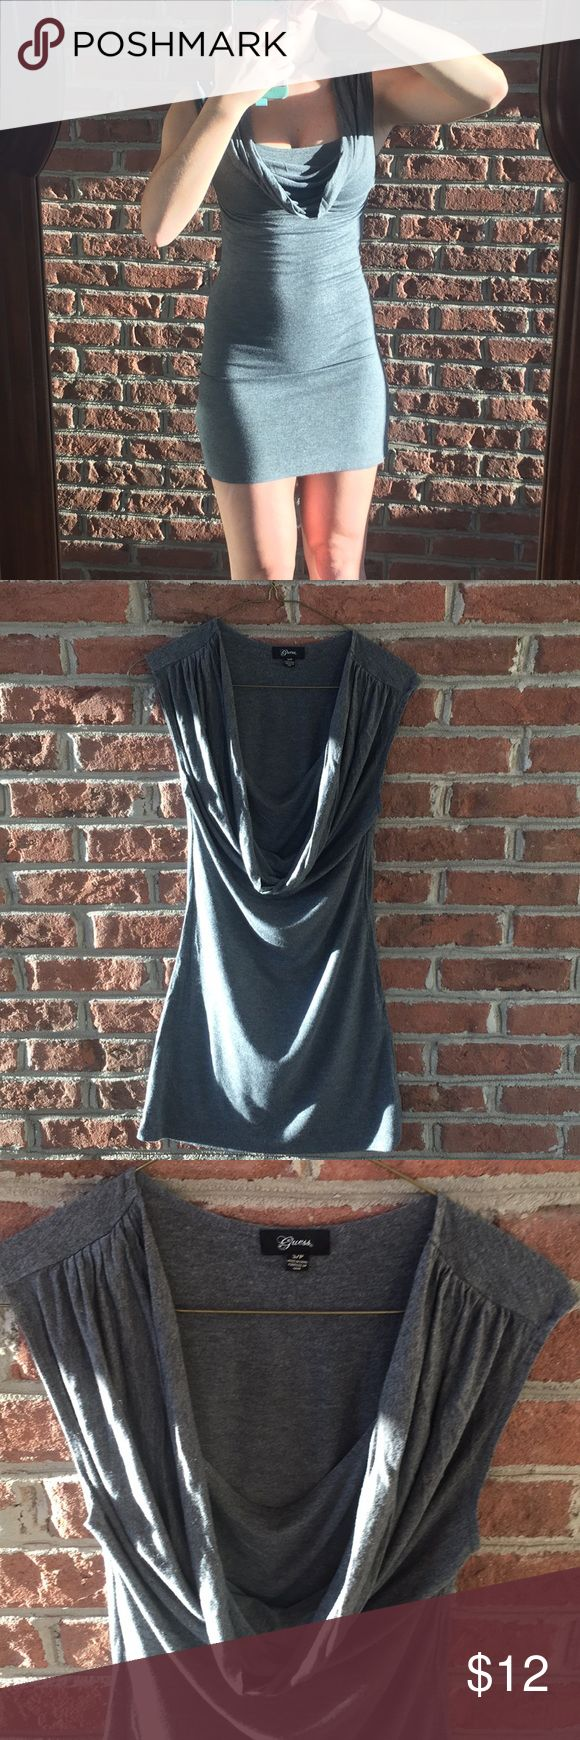 Sexy gray Guess dress size small This tight, comfortable can be dressed up sexy or dressed down casual. Scoop neck very form flattering. Cute for the holidays. Guess Dresses Mini